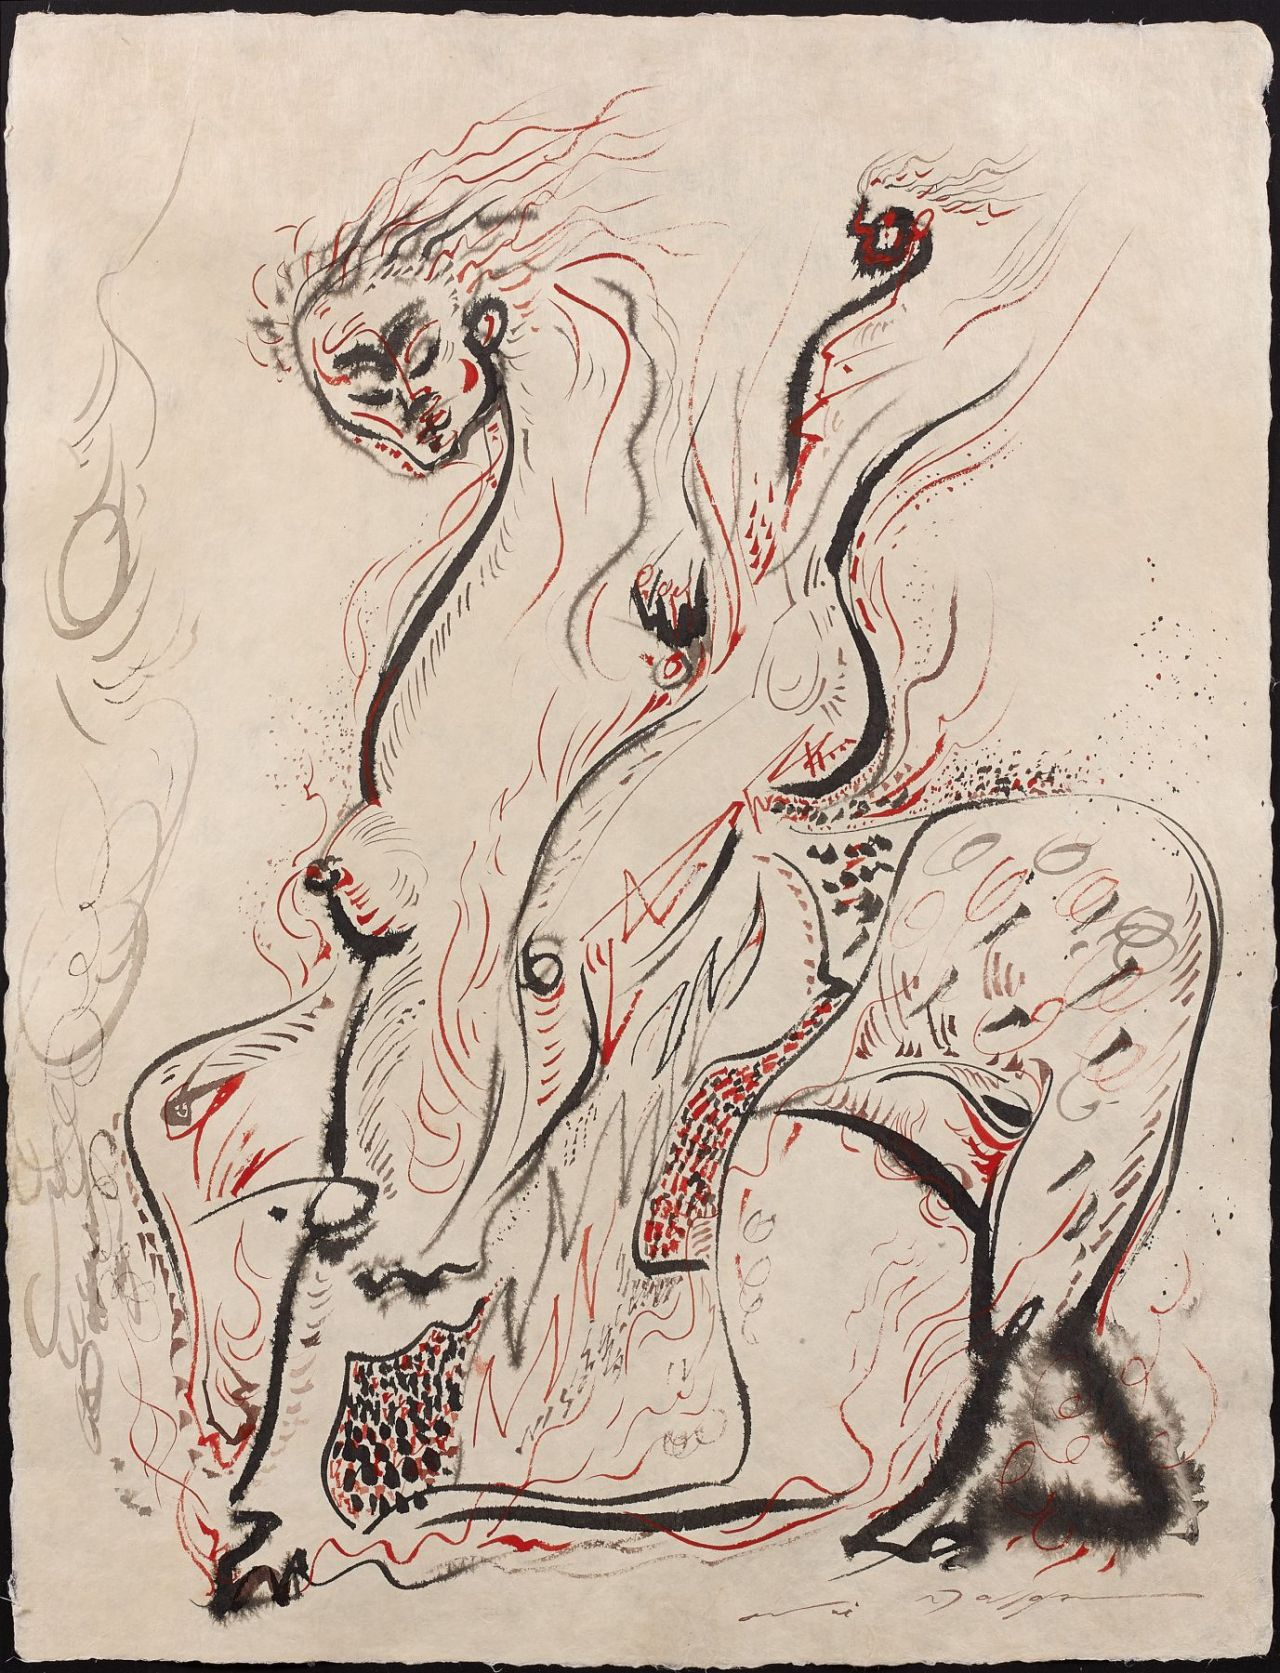 amare-habeo:  André Masson (French, 1896-1987)  Rider Chimeric I (Cavalier Chimerique I), 1968 Ink and color ink on Japanese paper